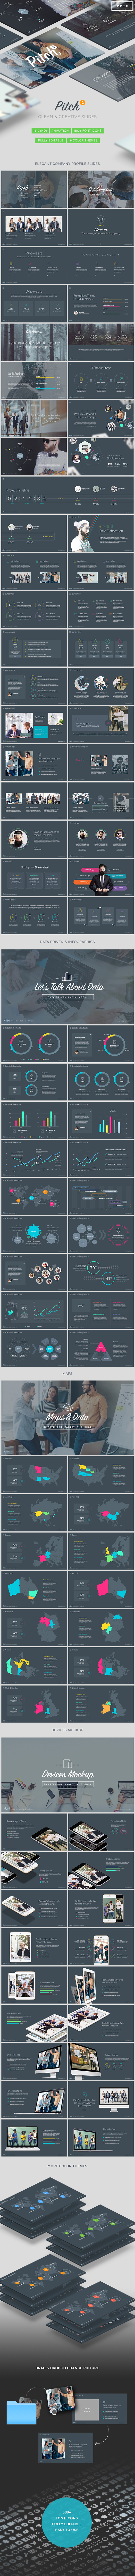 Pitch Vol.2 - Modern Powerpoint Template - PowerPoint Templates Presentation Templates